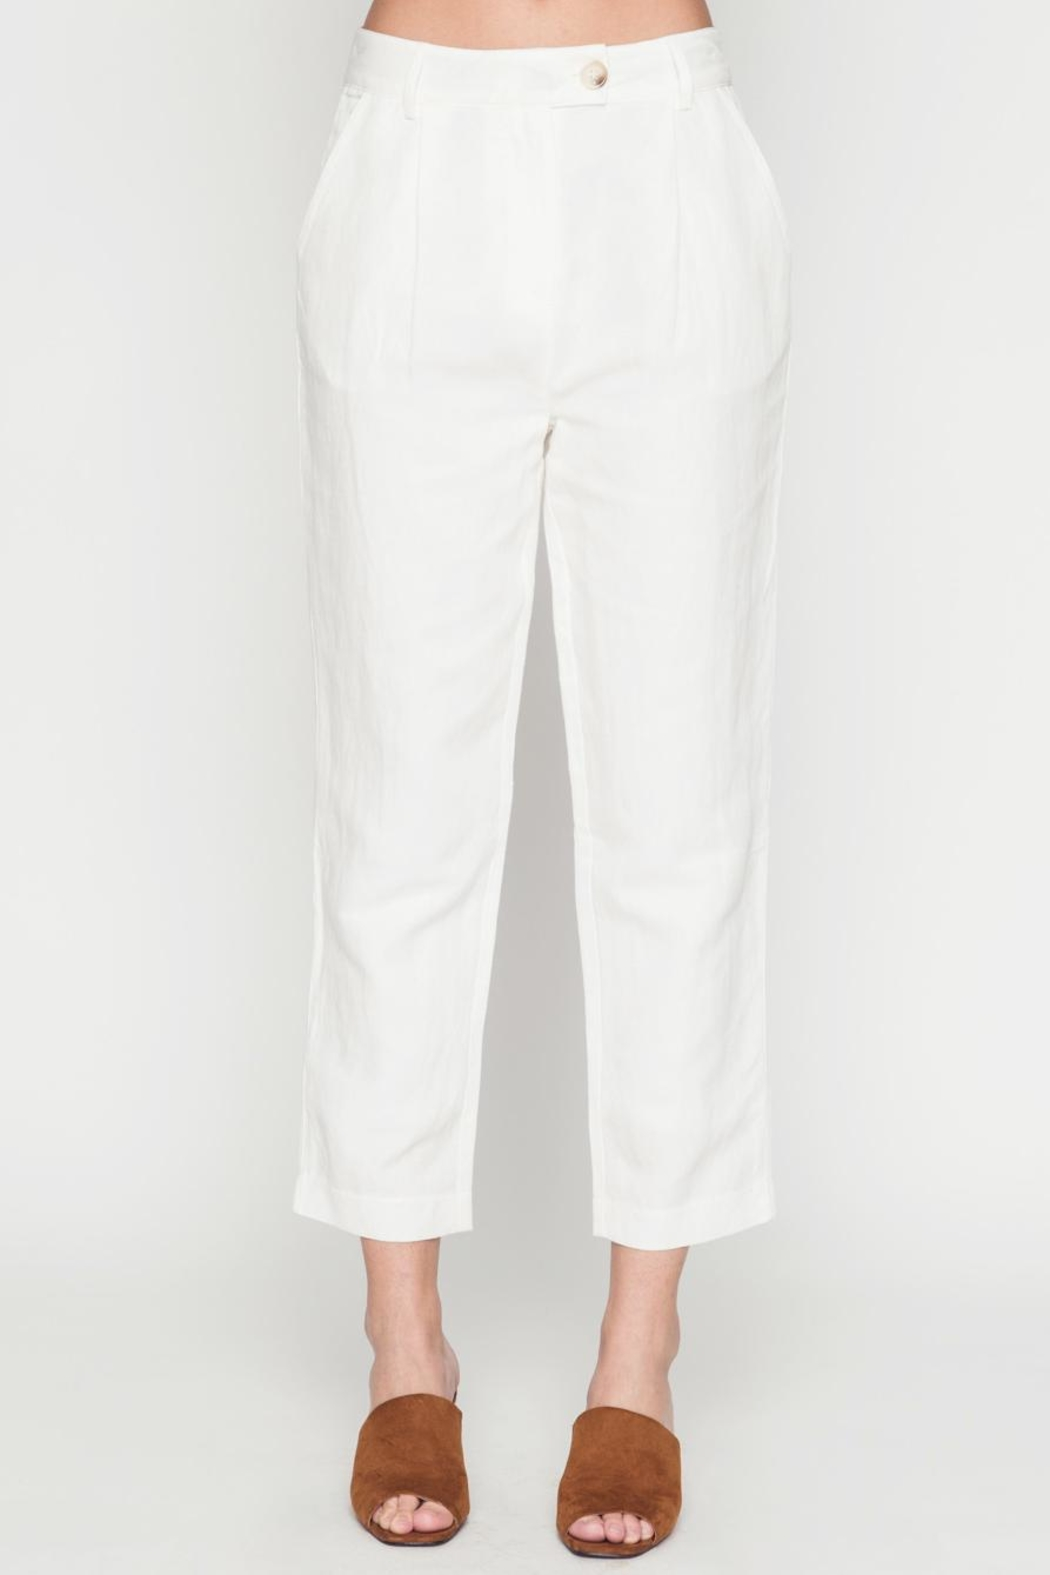 Movint Hight Waisted Pants - Main Image